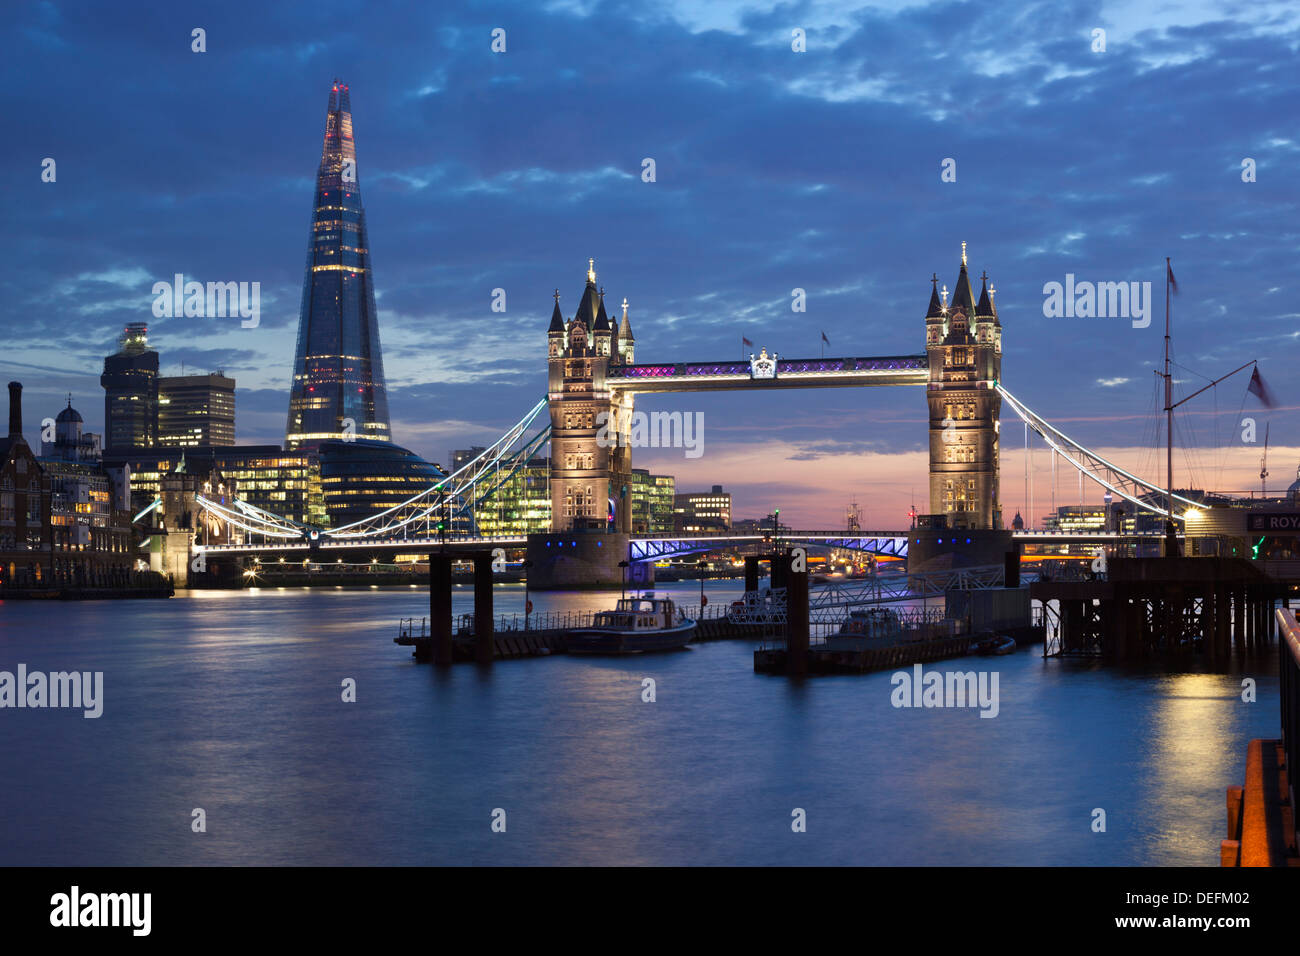 The Shard and Tower Bridge on the River Thames at night, London, England, United Kingdom, Europe - Stock Image